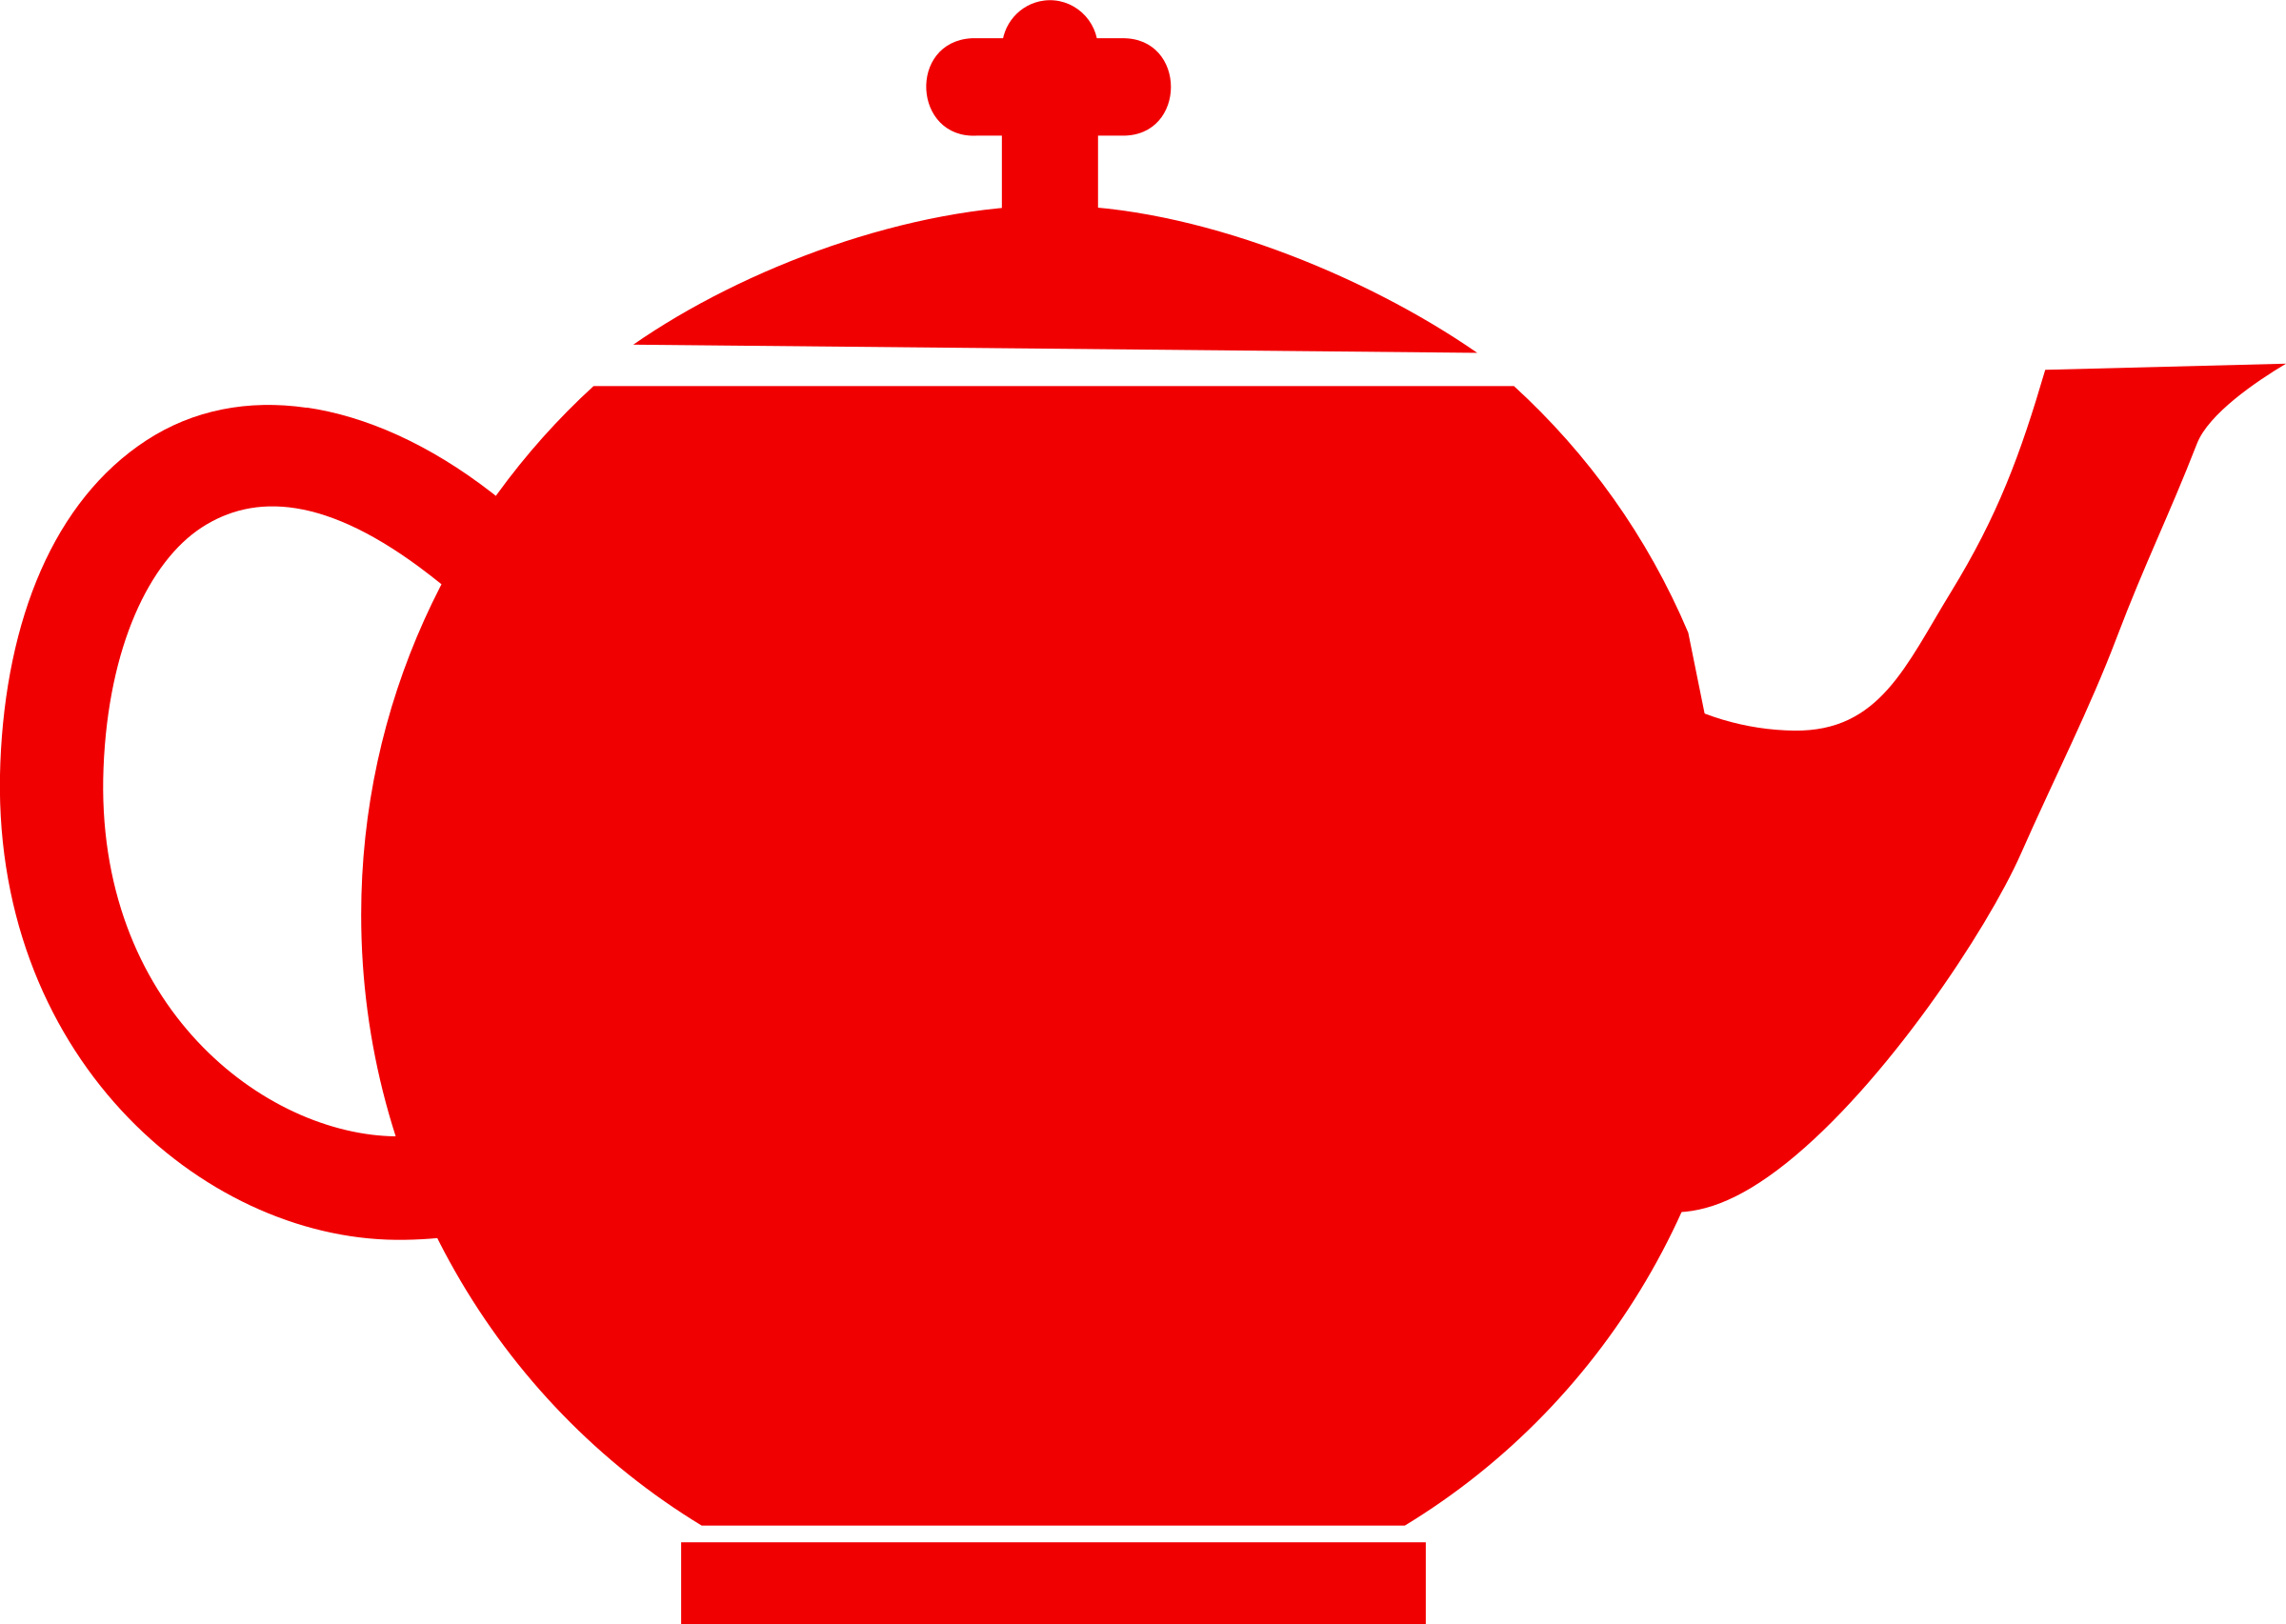 Png clip art of tea and teapot. Jubilee pot red icons